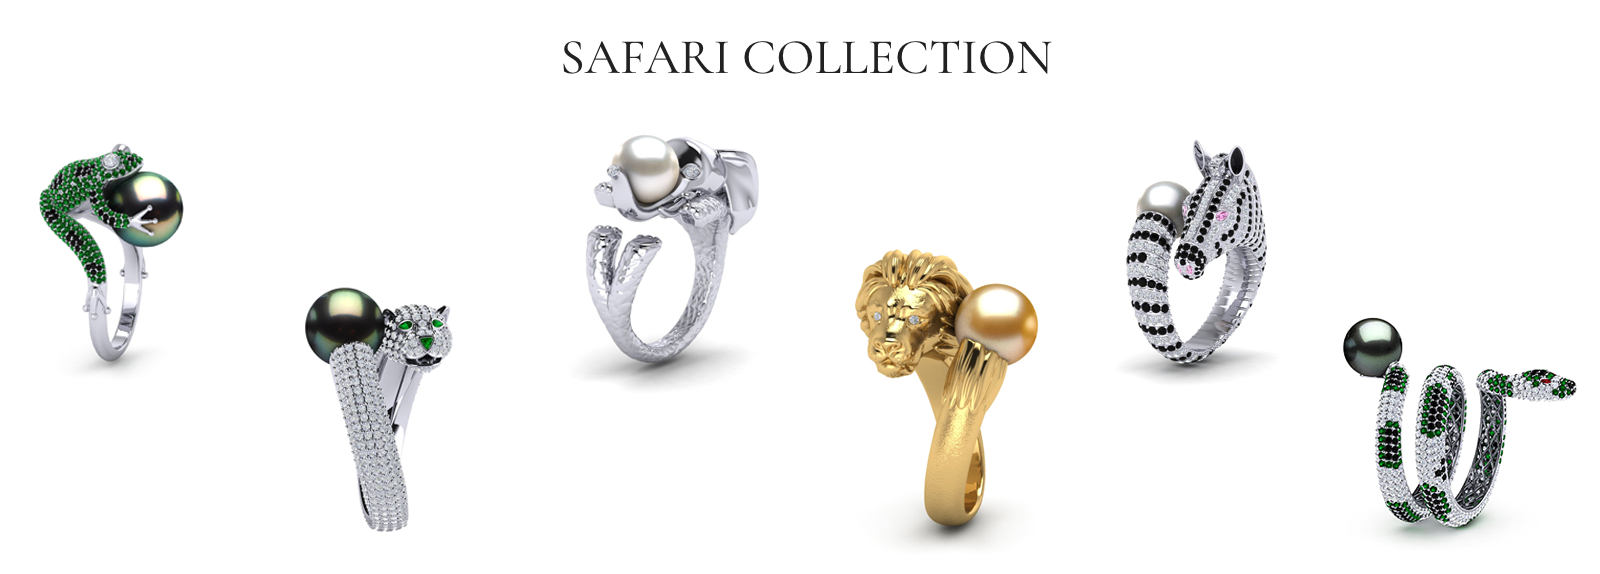 PEARL RING SAFARI COLLECTION